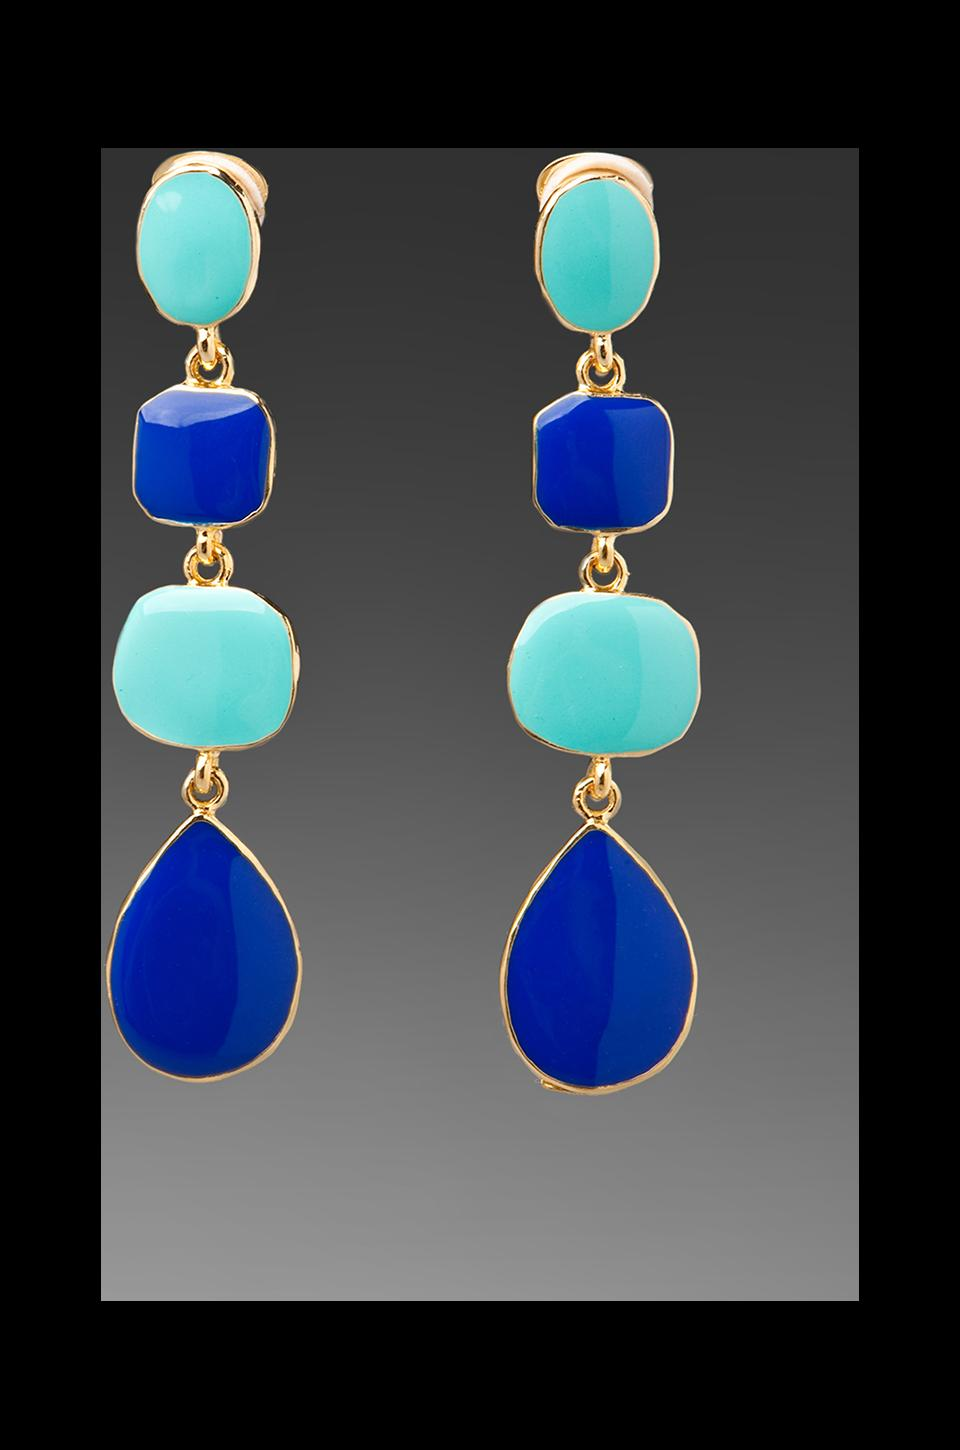 Kenneth Jay Lane Stone Drop Earrings in Turquoise/Cobalt